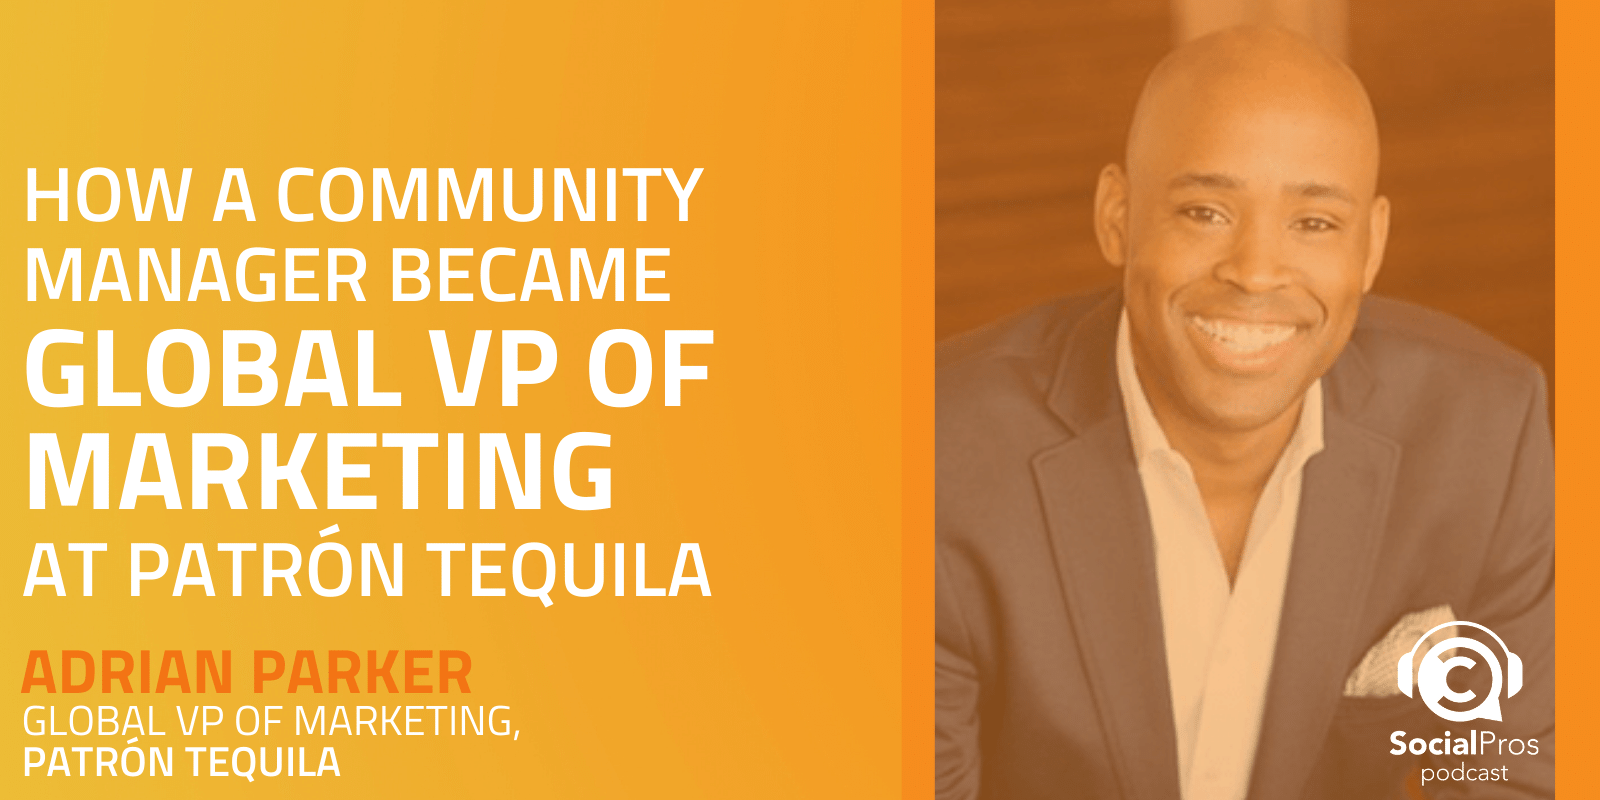 How a Community Manager Became Global VP of Marketing at Patron Tequila